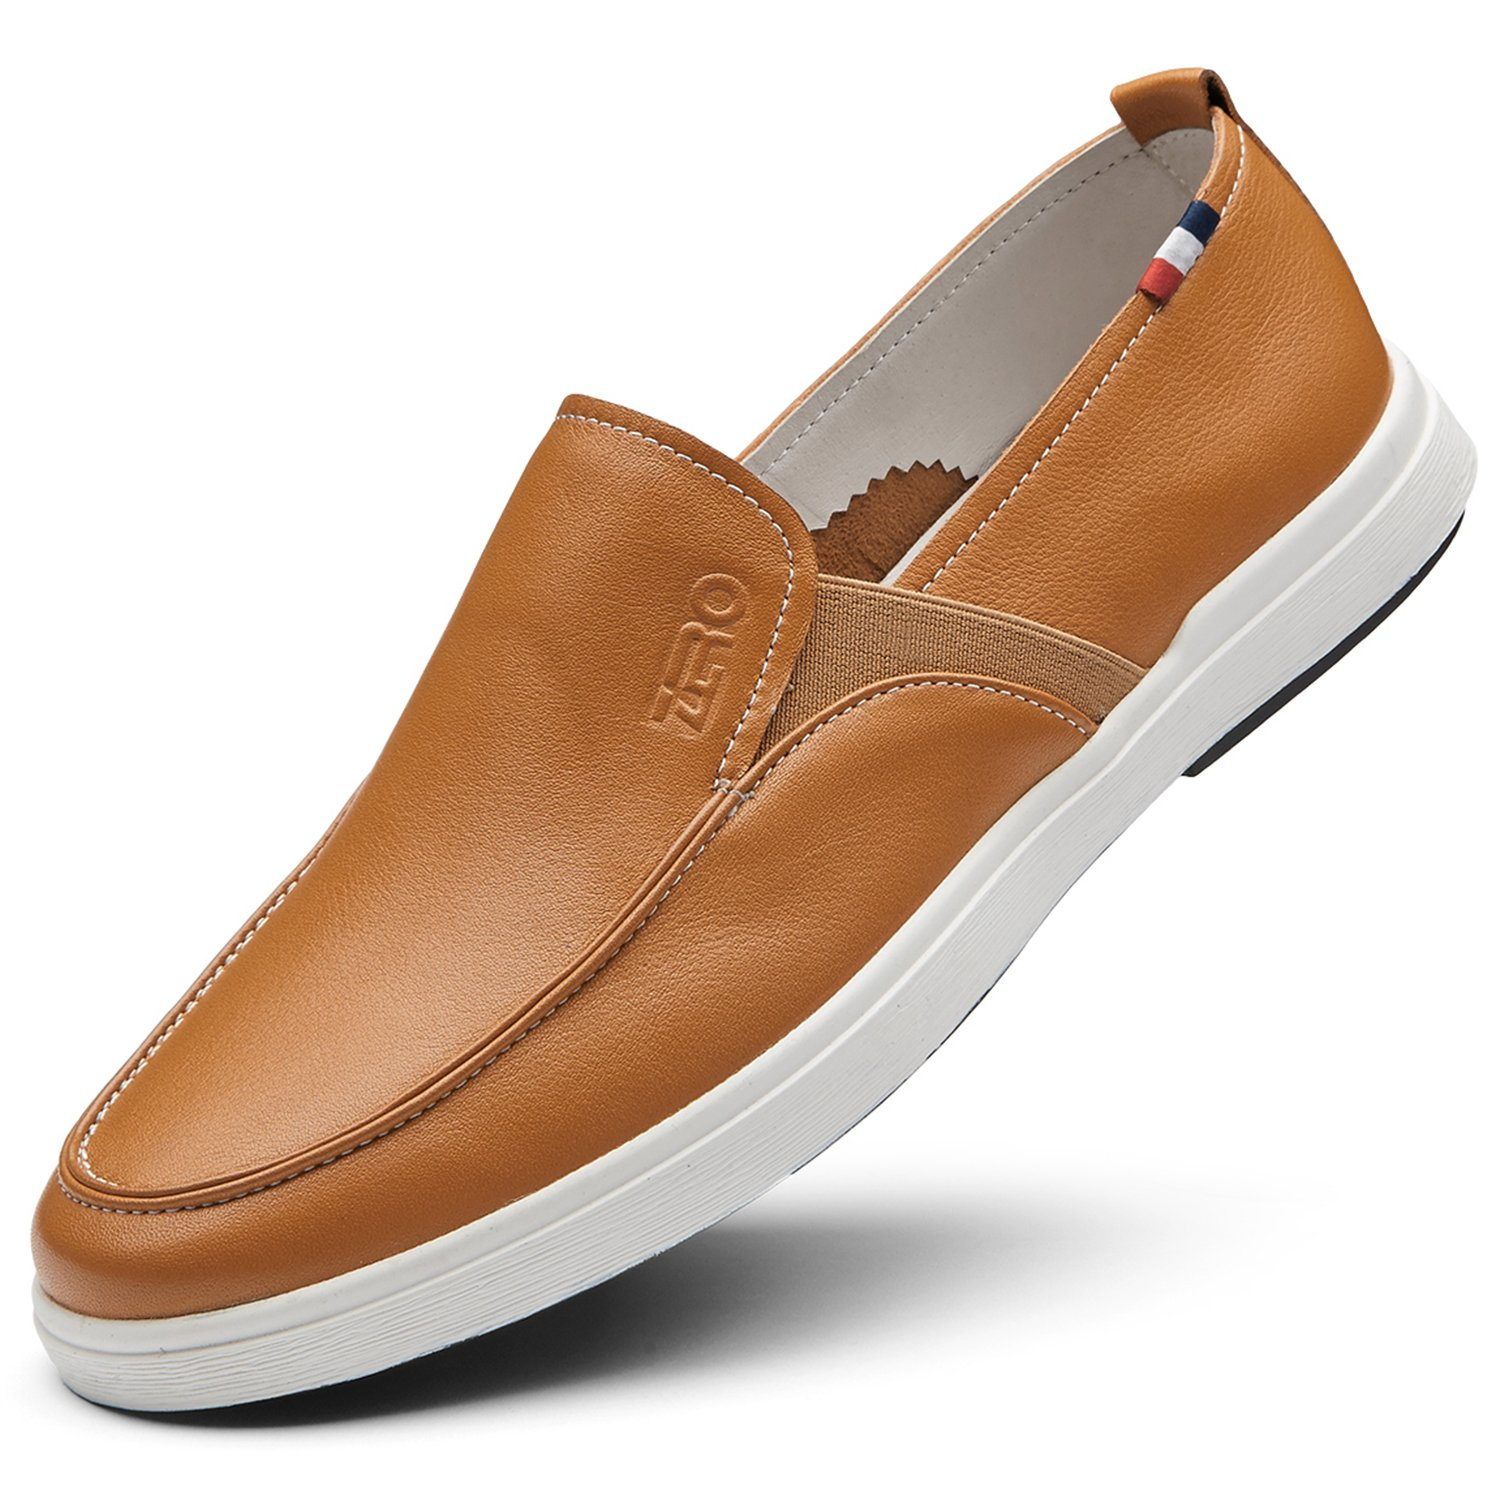 ZRO Men's Popular Casual Loafer Branded Shoes Fashion slip on Brown US 10